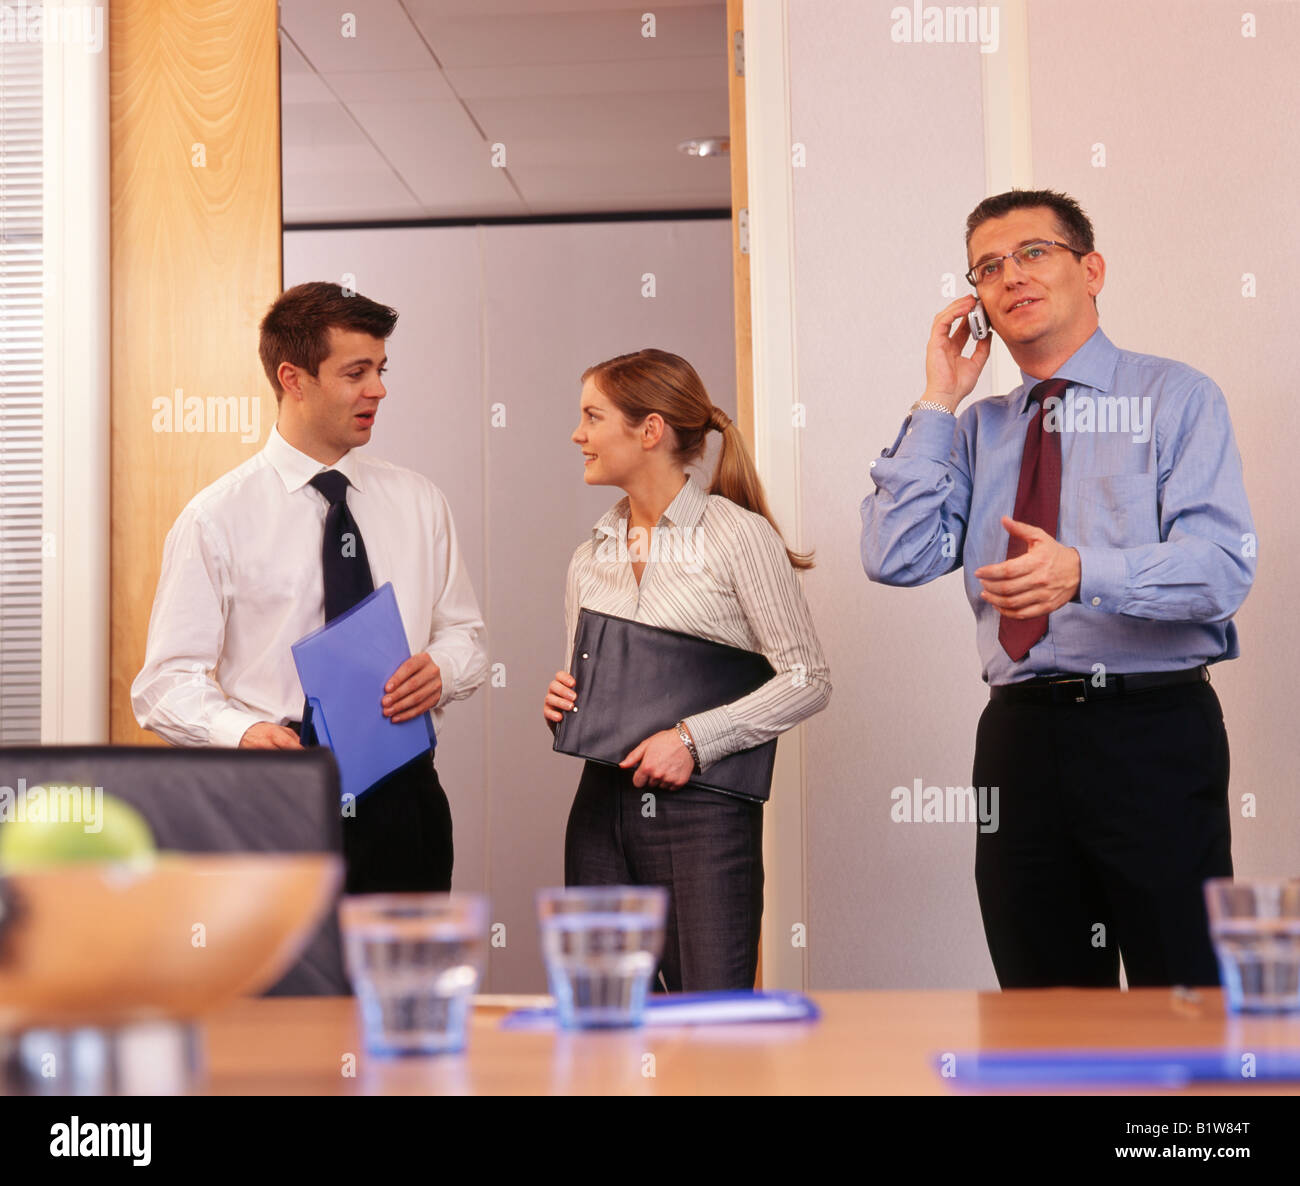 man with mobile phone at business meeting - Stock Image